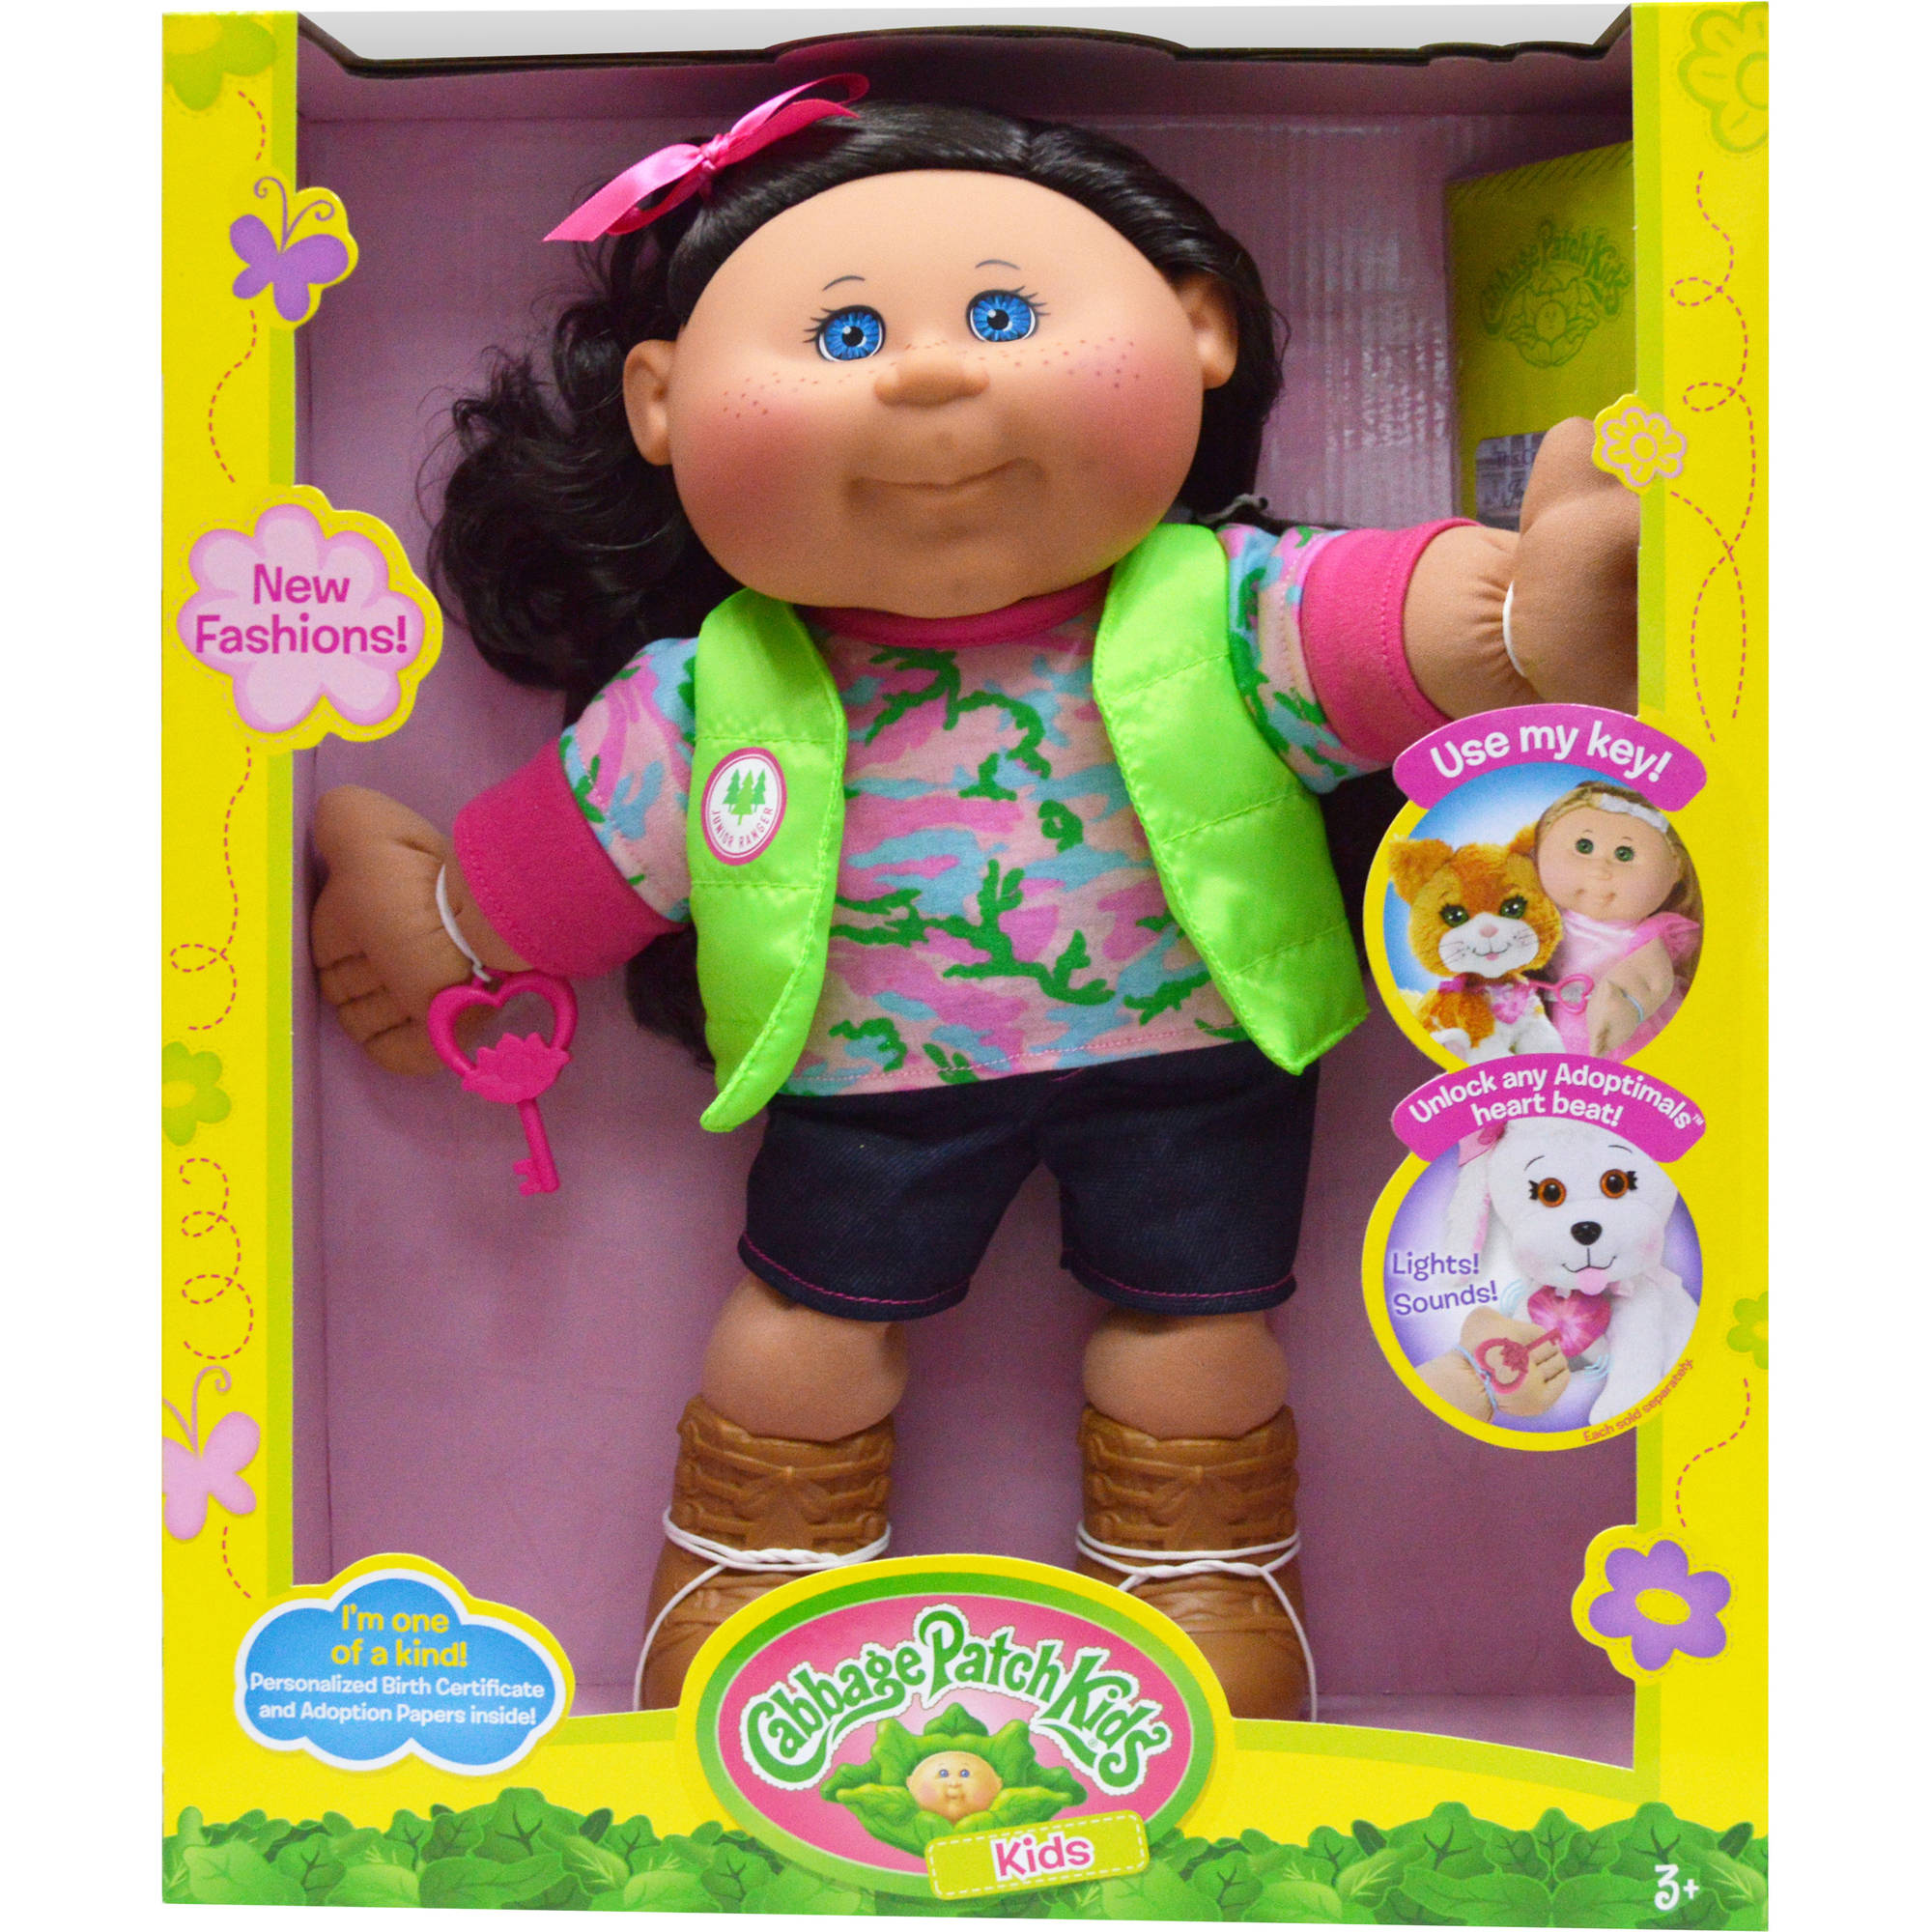 Cabbage Patch Kids Adventure Doll, Brown Hair Blue Eye Girl by Wicked Cool Toys